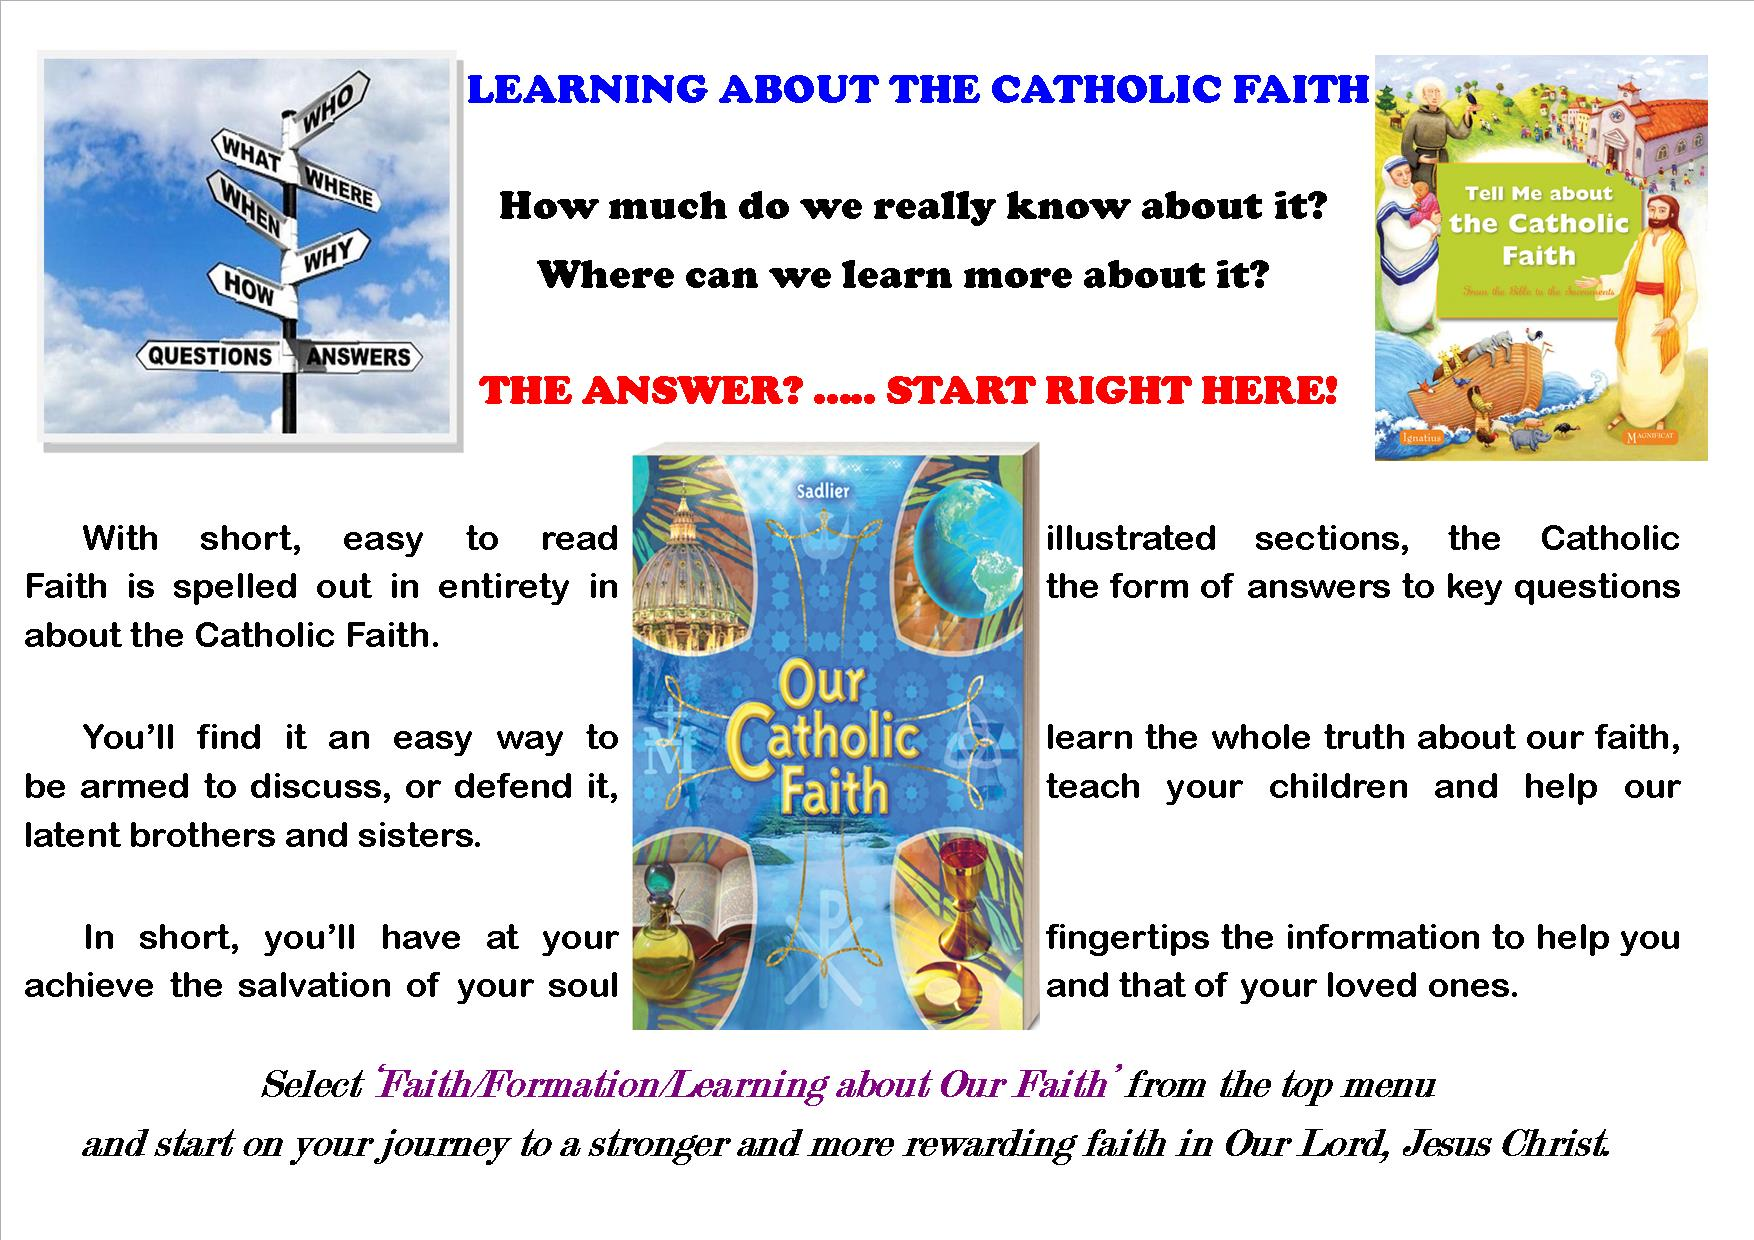 Learning about the Catholic Faith